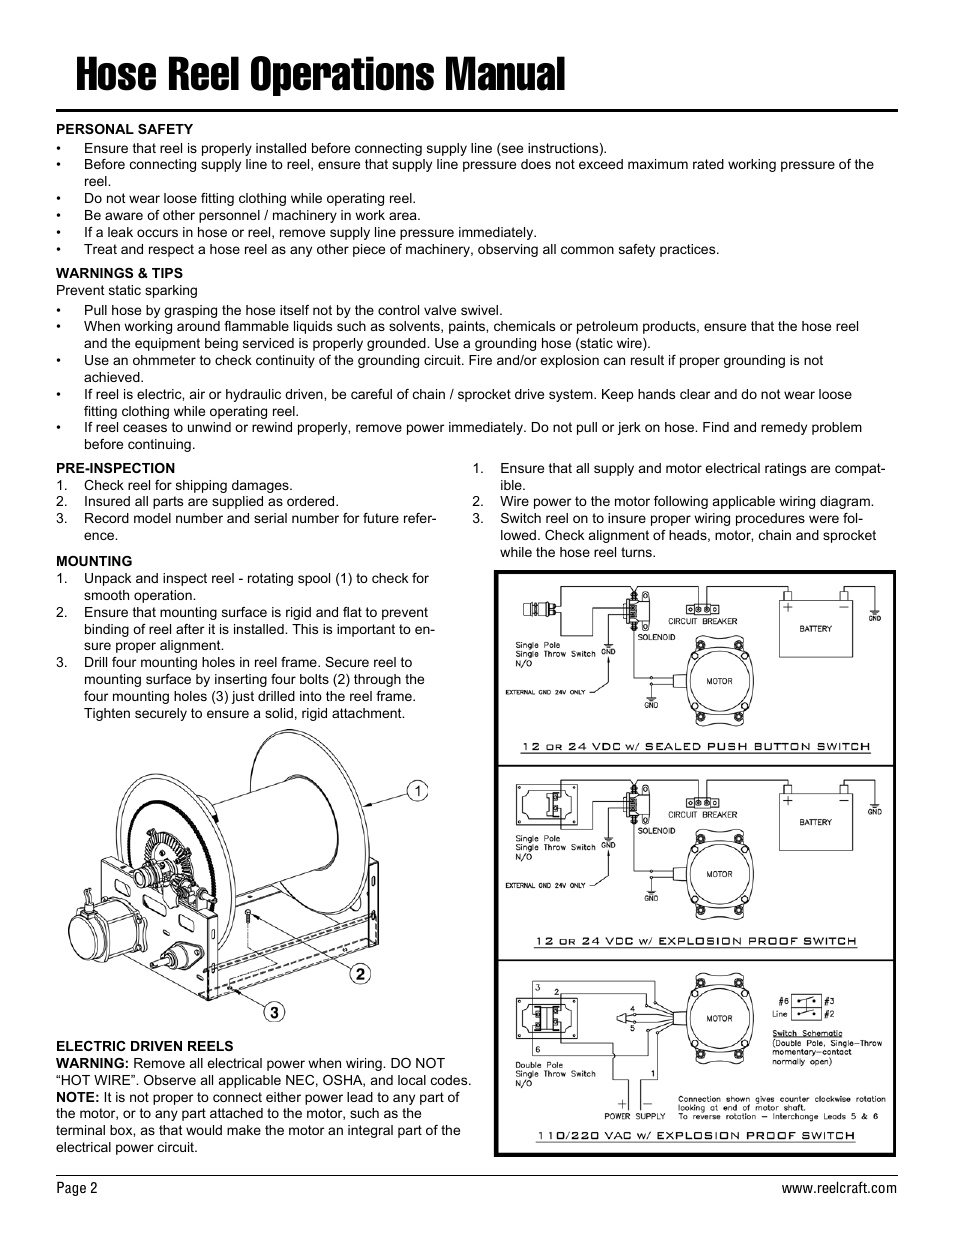 Hose Reel Operations Manual